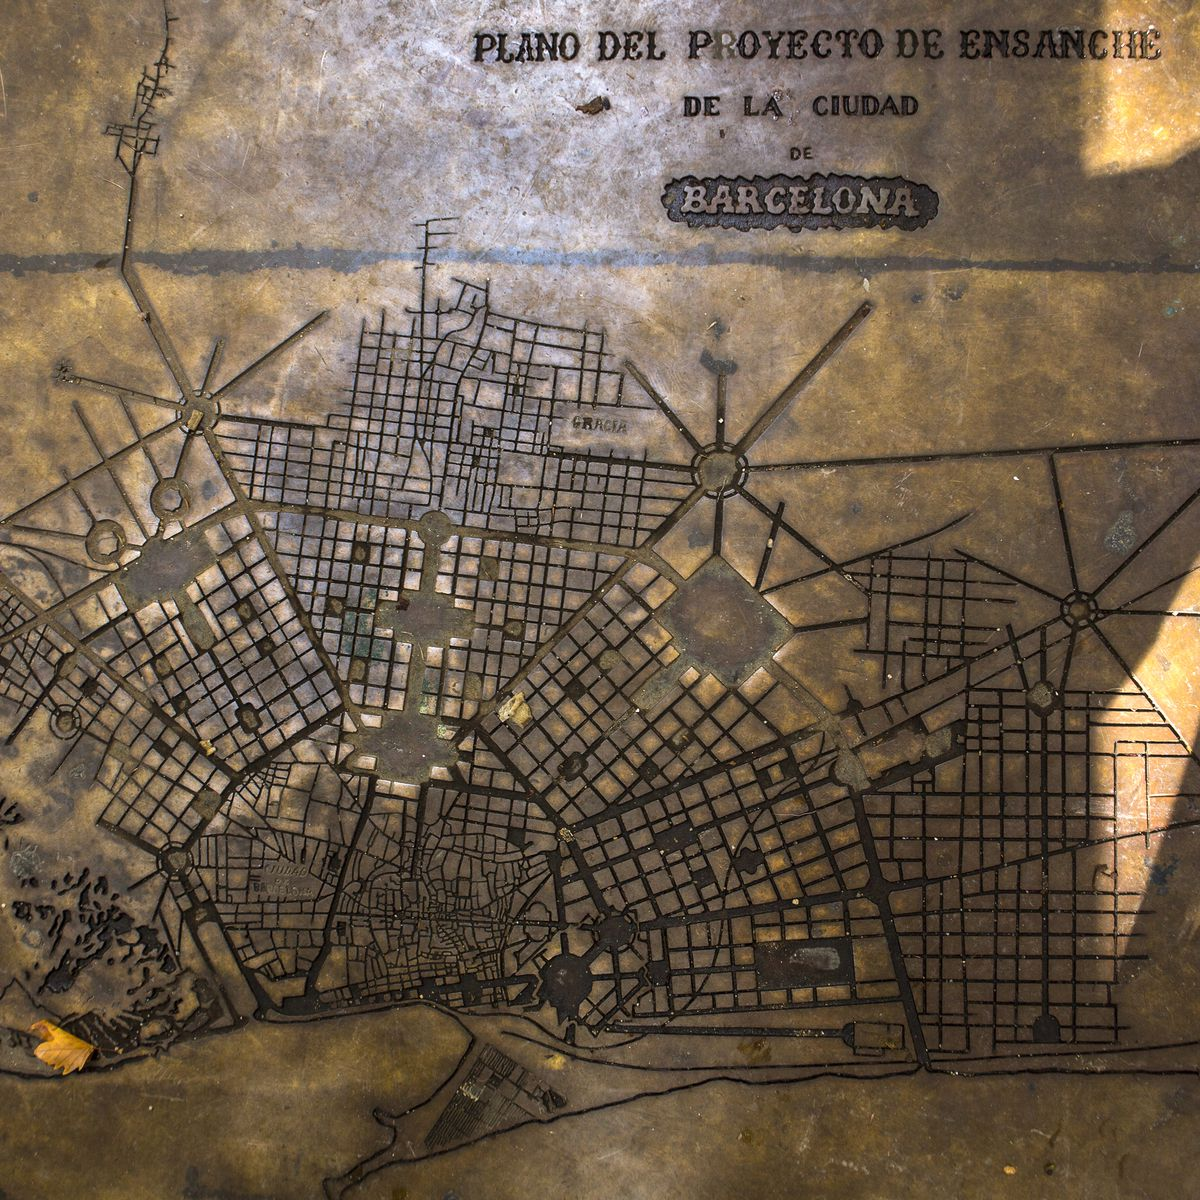 Embedded in the pavement of a plaza in in the Gracia neighborhood superblock: a 19th-century plan for Barcelona that never came to pass. Taken October 14th, 2018. Barcelona, Catalonia, Spain.